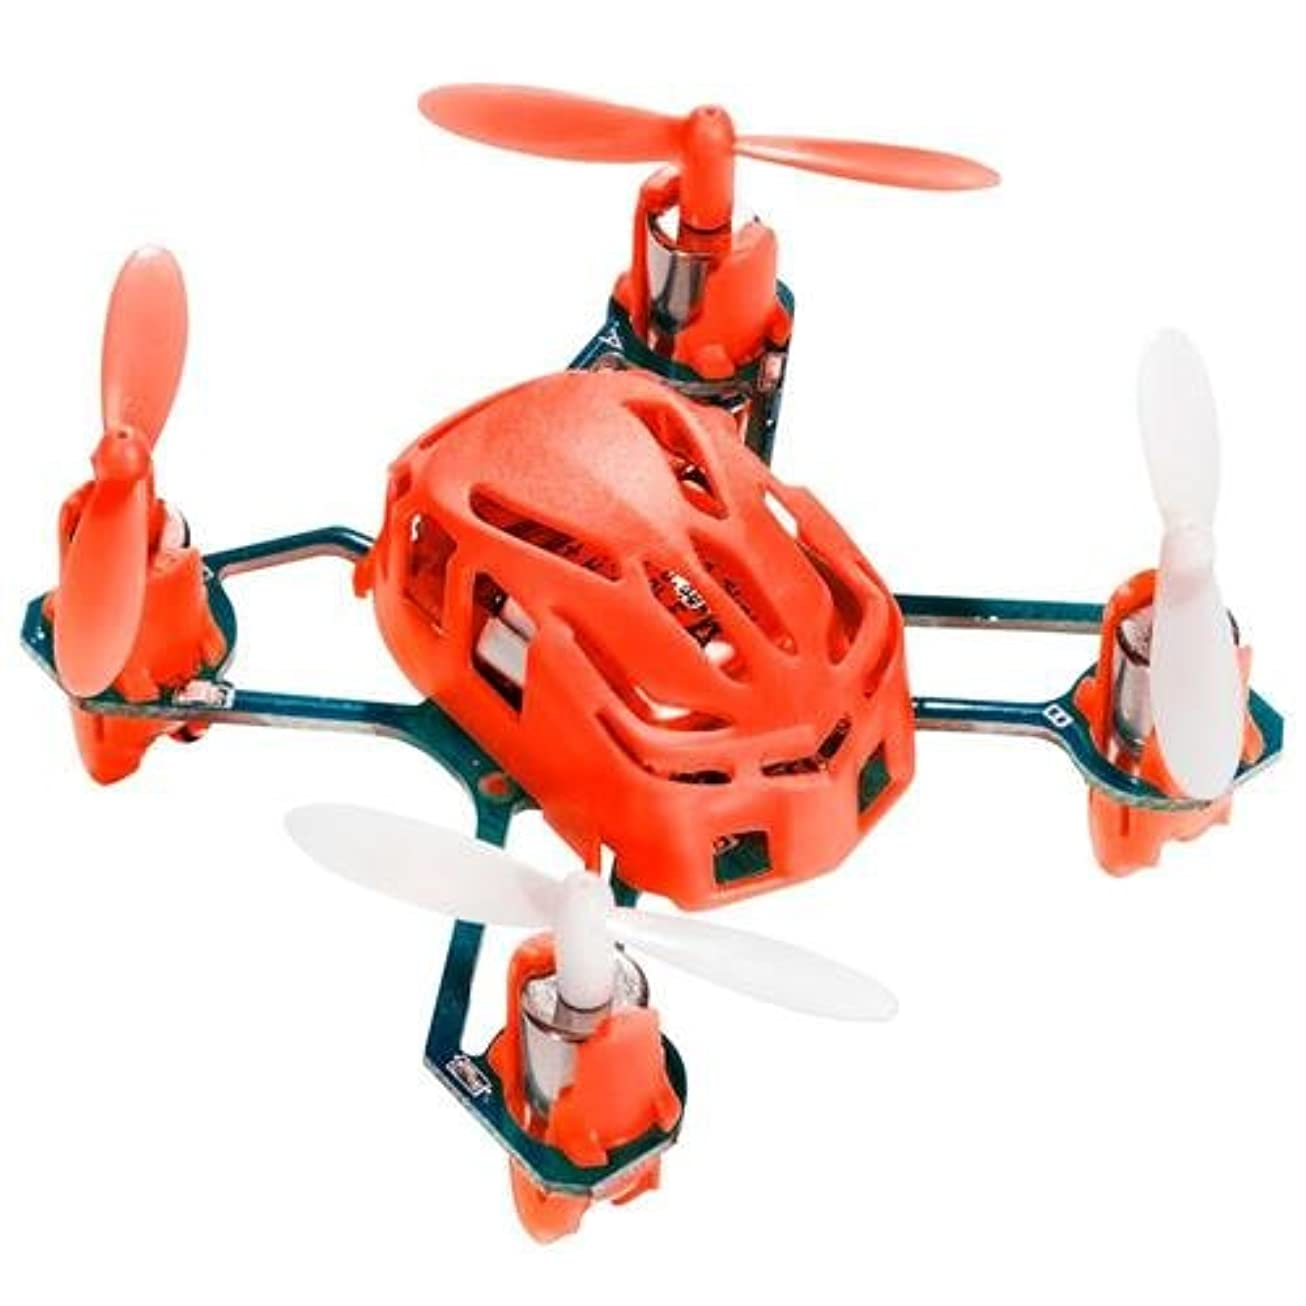 HUBSAN Q4 Nano Quadcopter - Red Vehicle dgsrpdzvlptq4